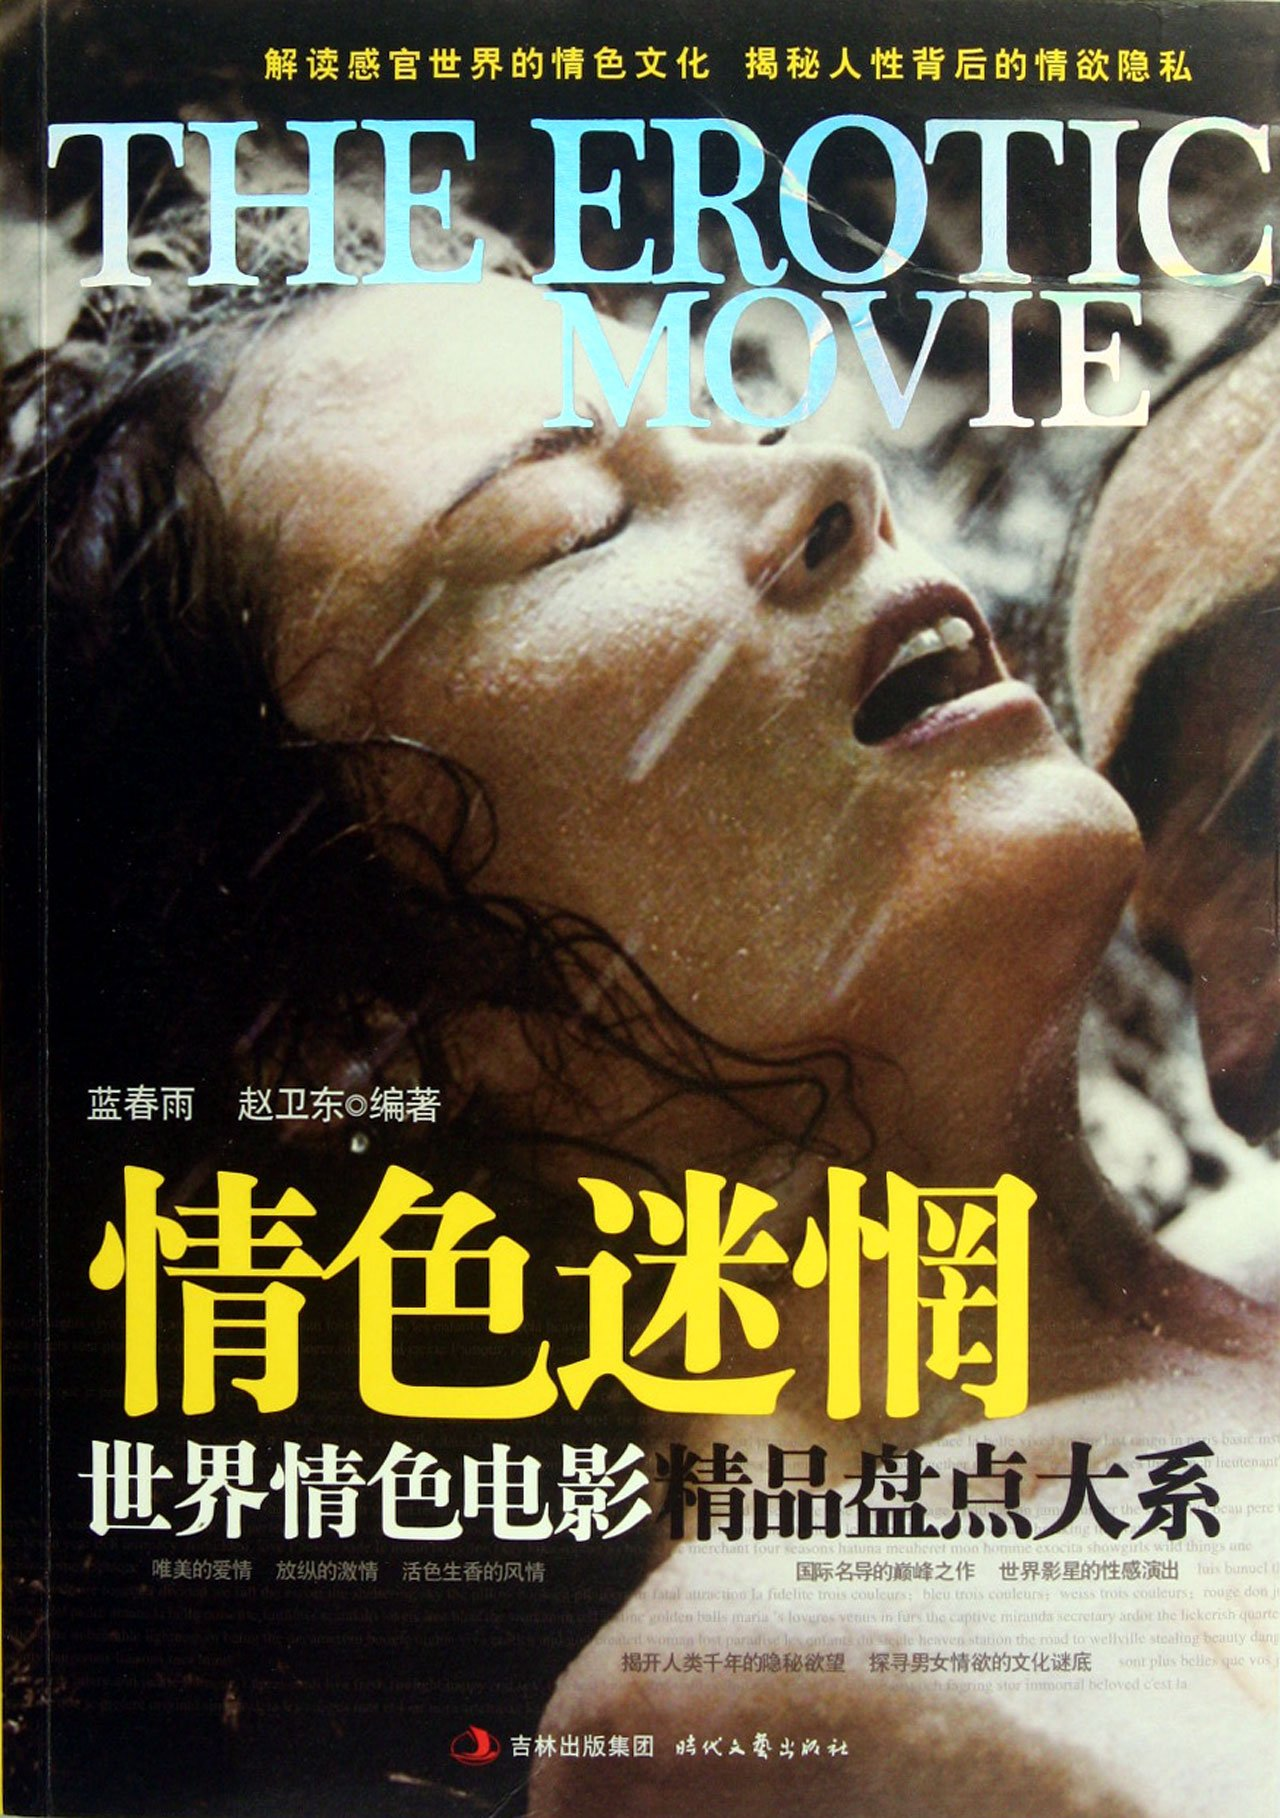 Classic erotic asian movie list